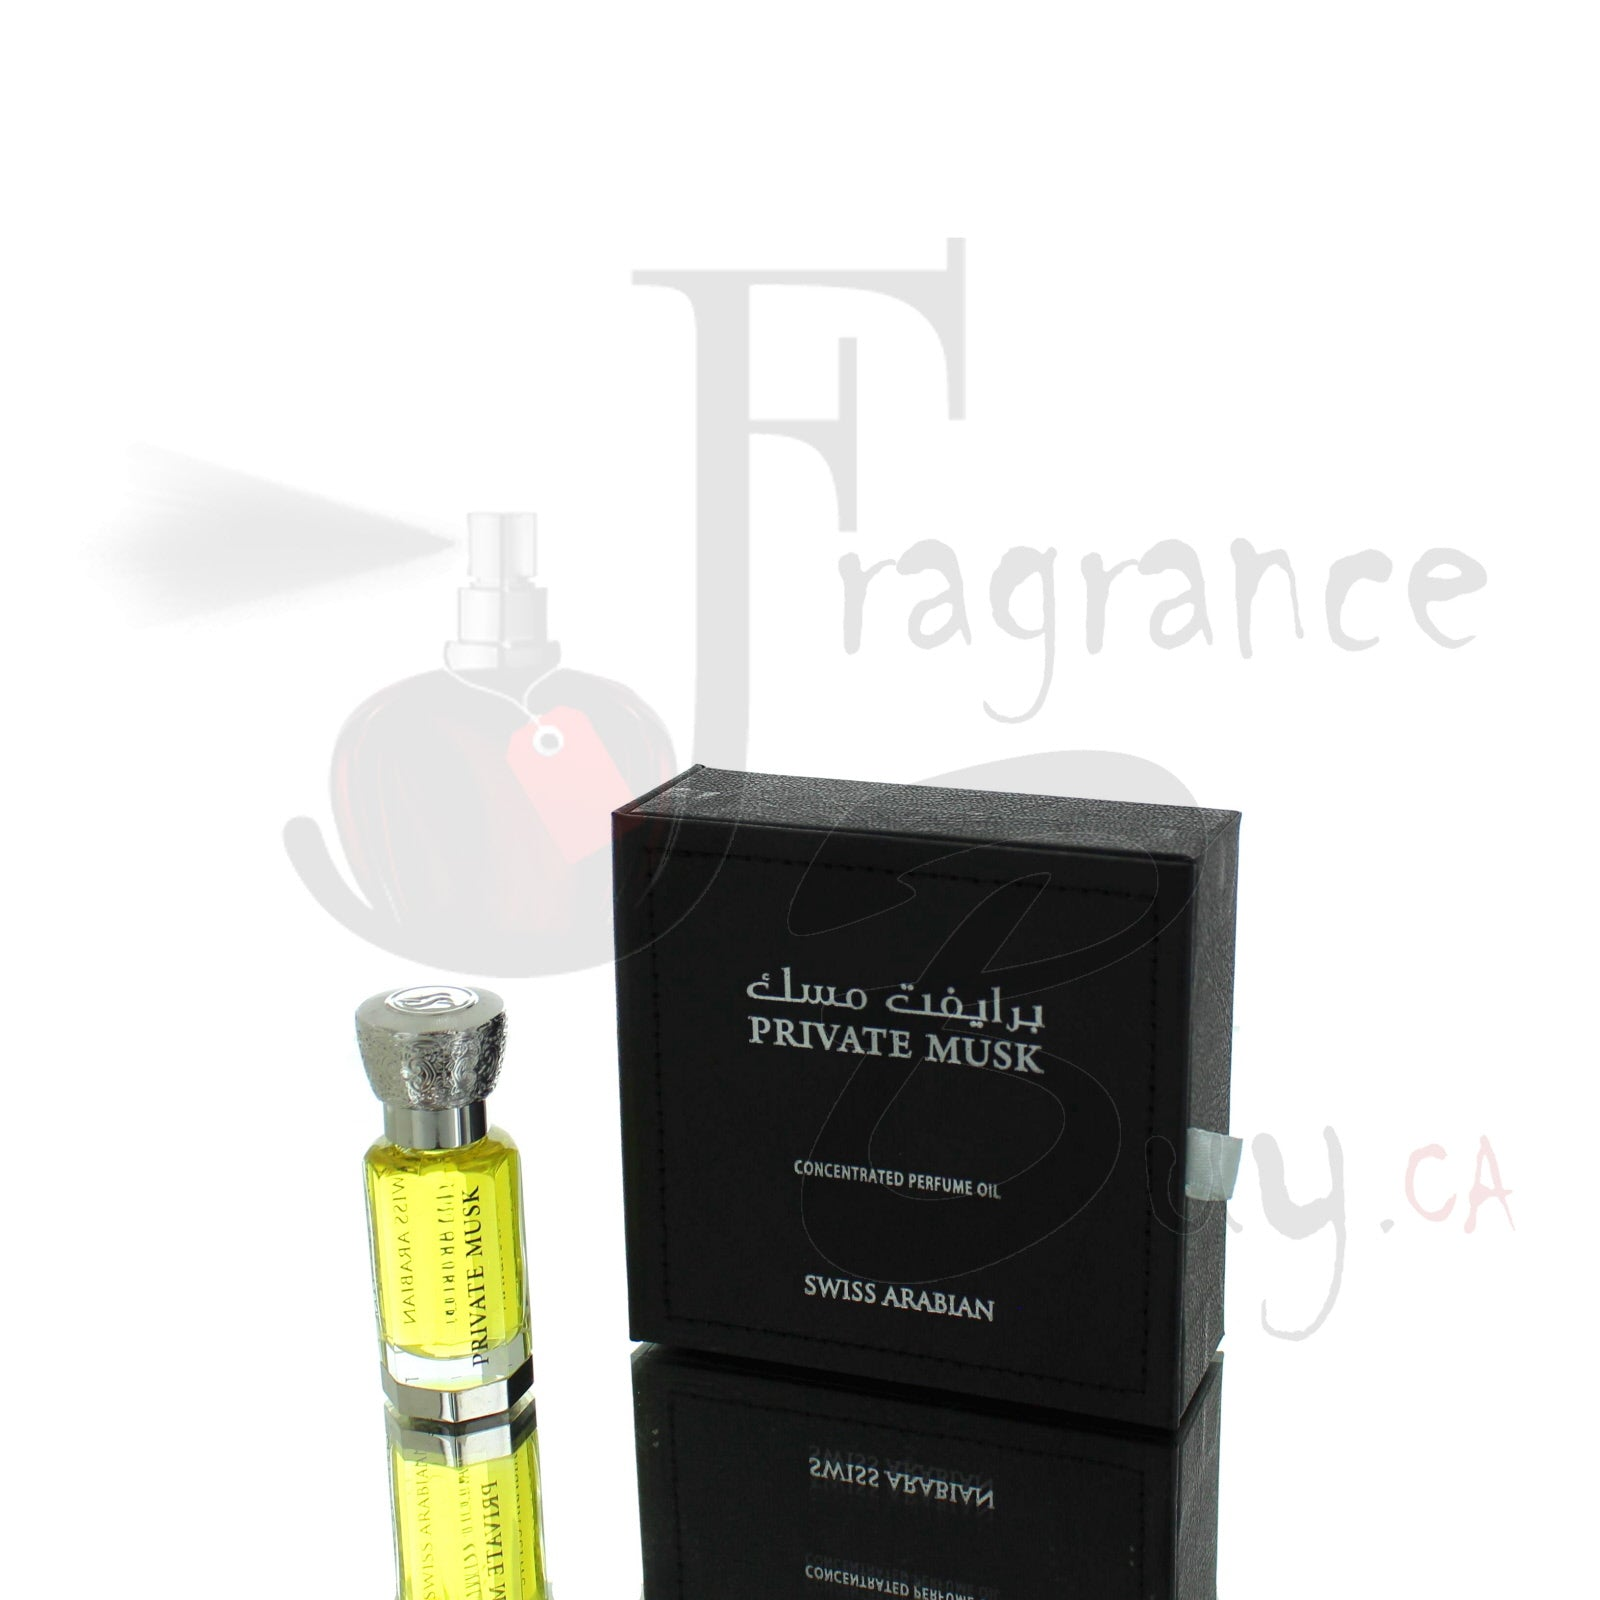 Swiss Arabian Private Musk 1073 Concentrated Perfume Oil For Man/Woman